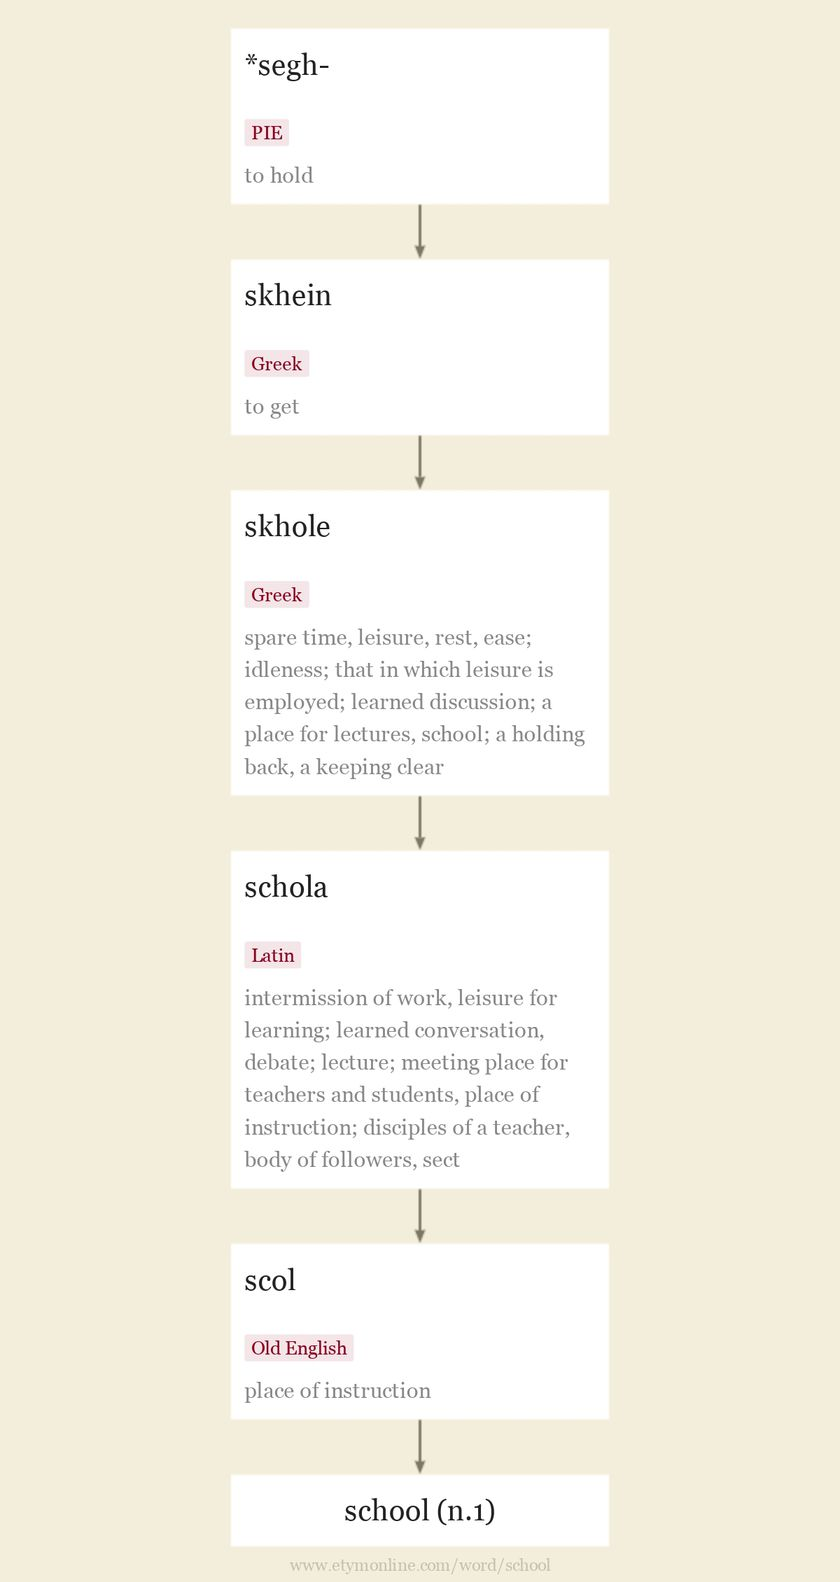 Origin and meaning of school